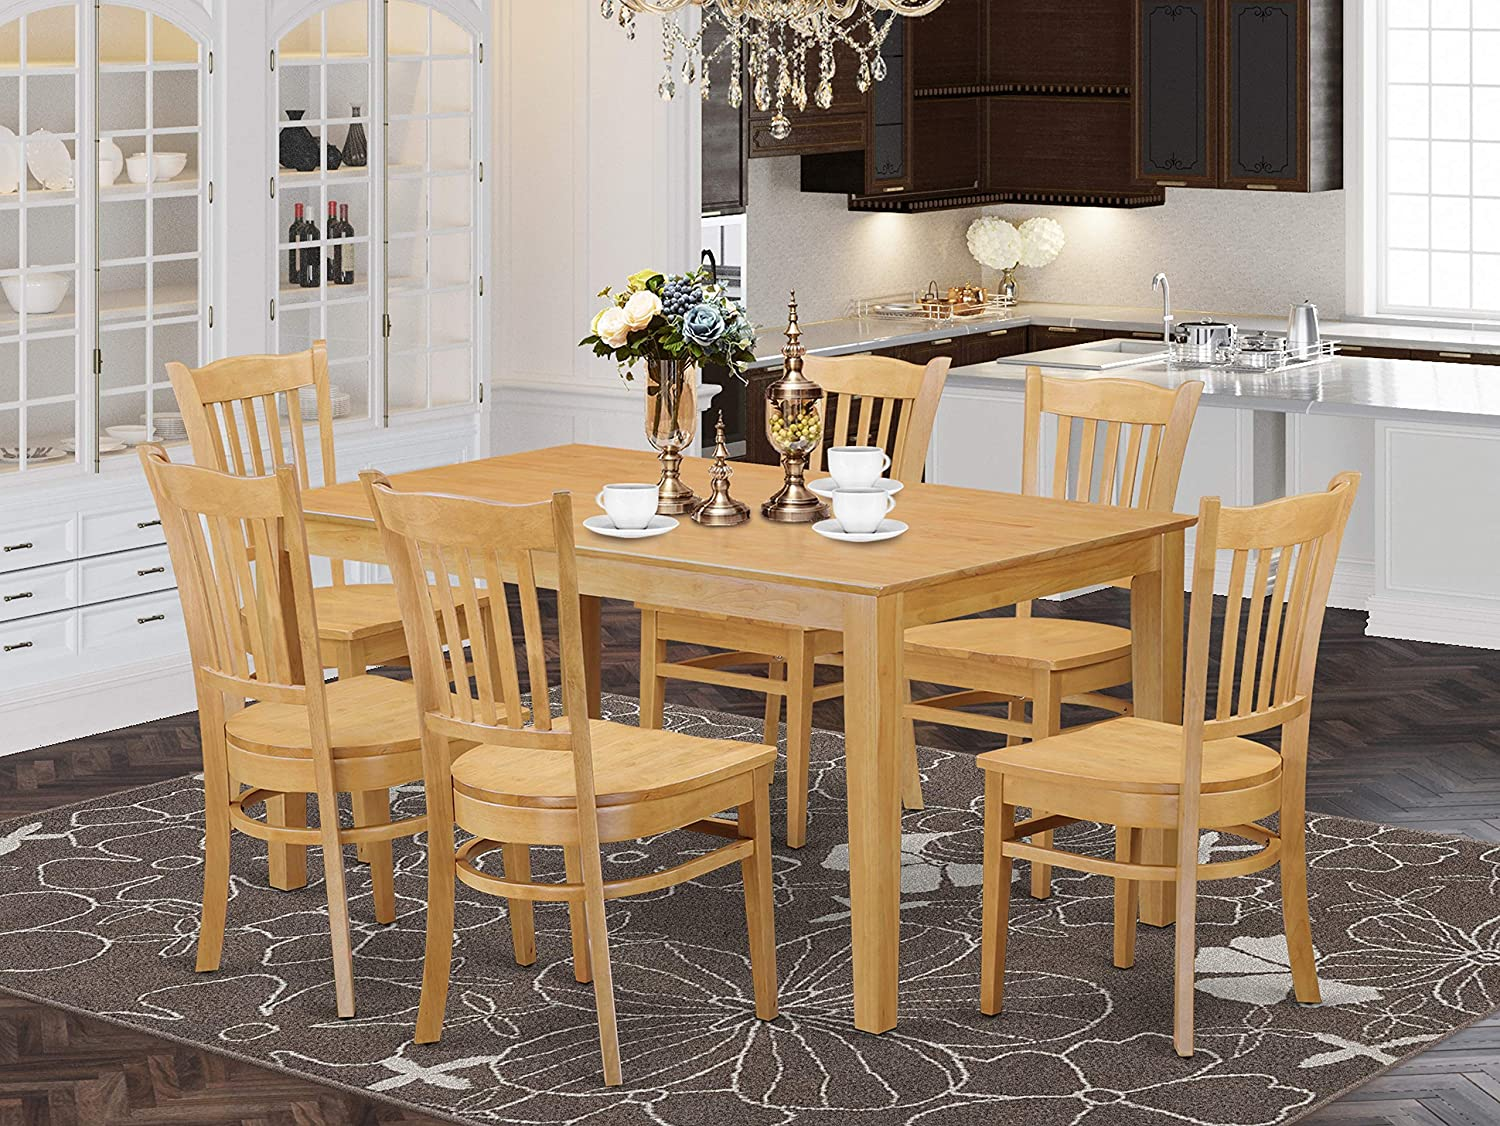 East West Furniture Small Dining Table Set 9 Piece   Wooden Dining Room  Chairs Seat   Oak Finish Wood Table and Structure